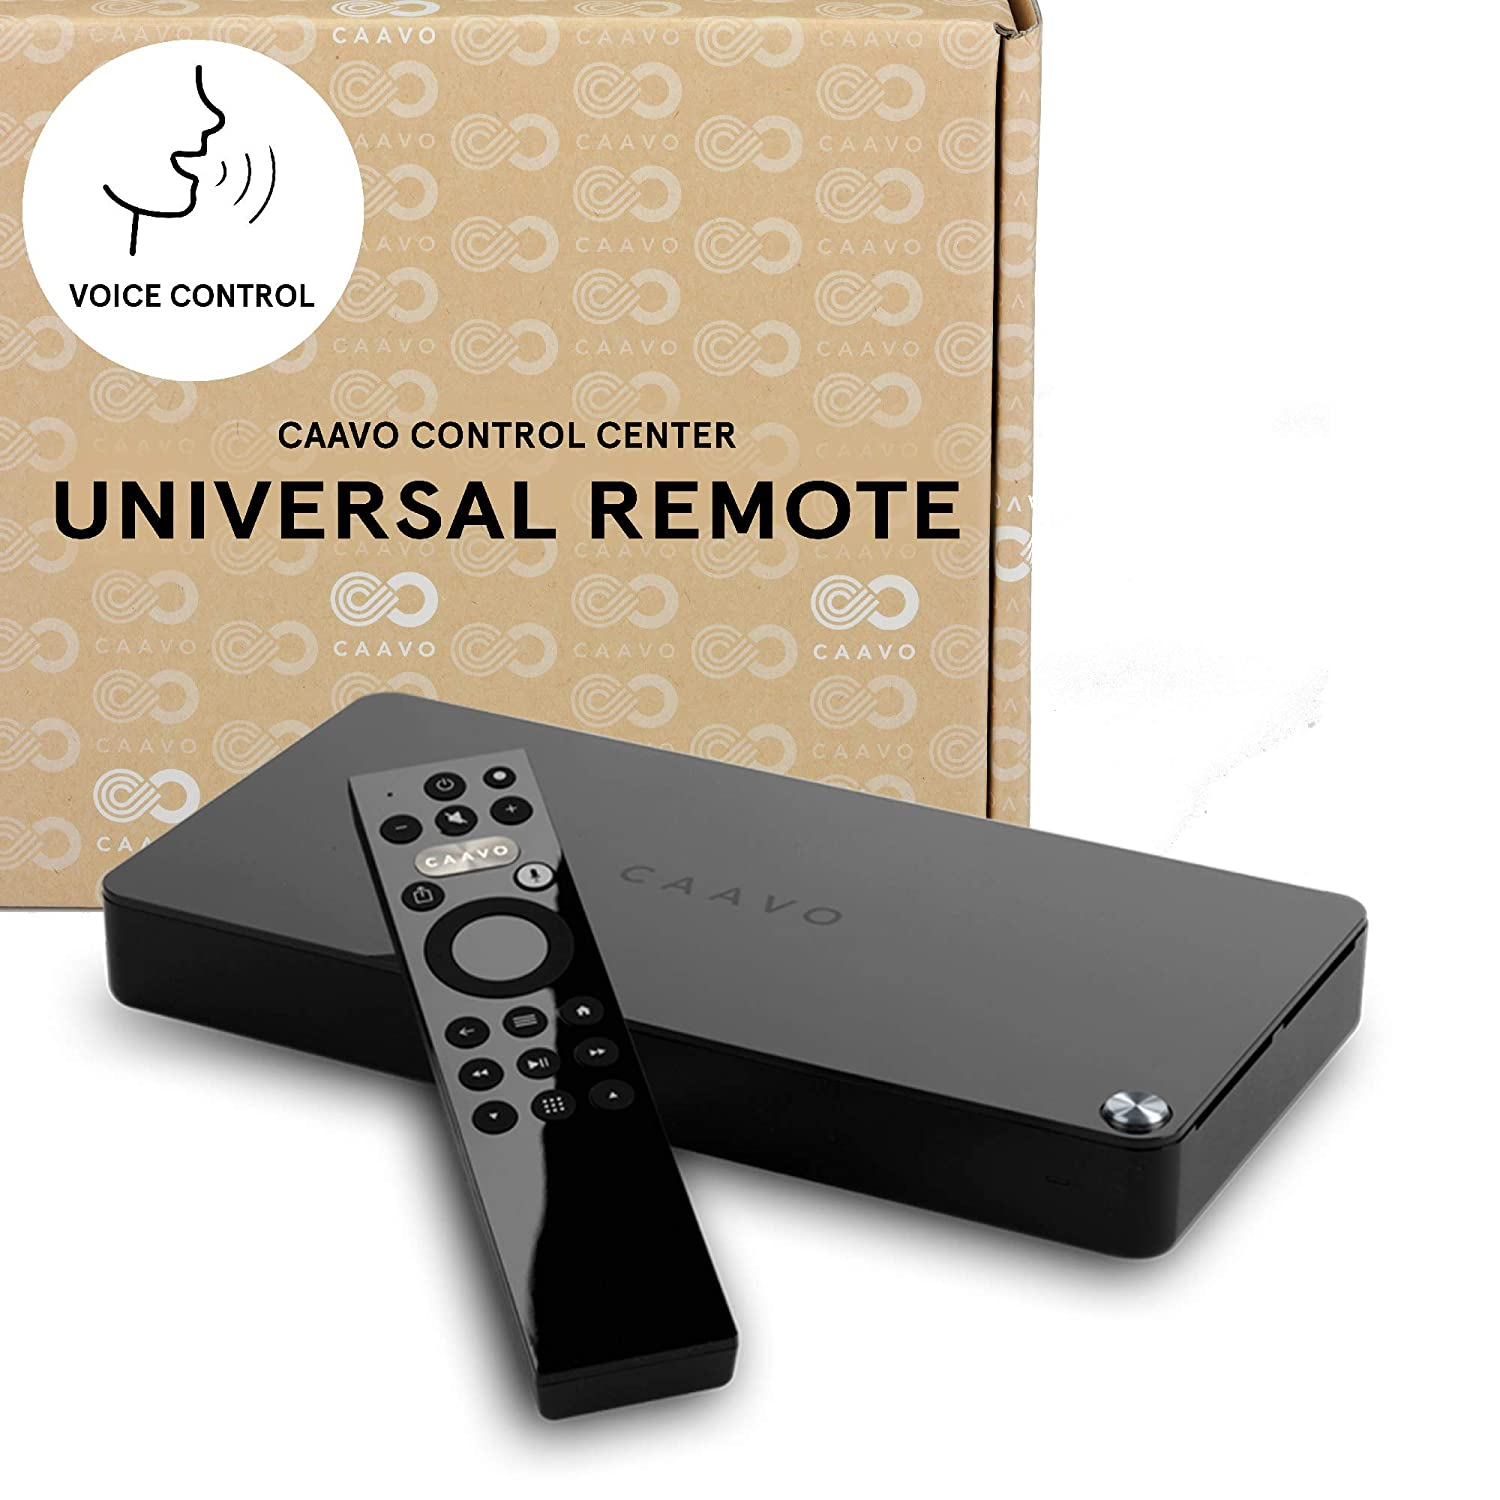 591e6de10a0 Caavo Universal Remote and Smart Home Theater Hub/HDMI Switch with Voice  Control for Roku, Apple TV, Nvidia Shield, Streaming Sticks, Sonos,  Netflix, Hulu, ...